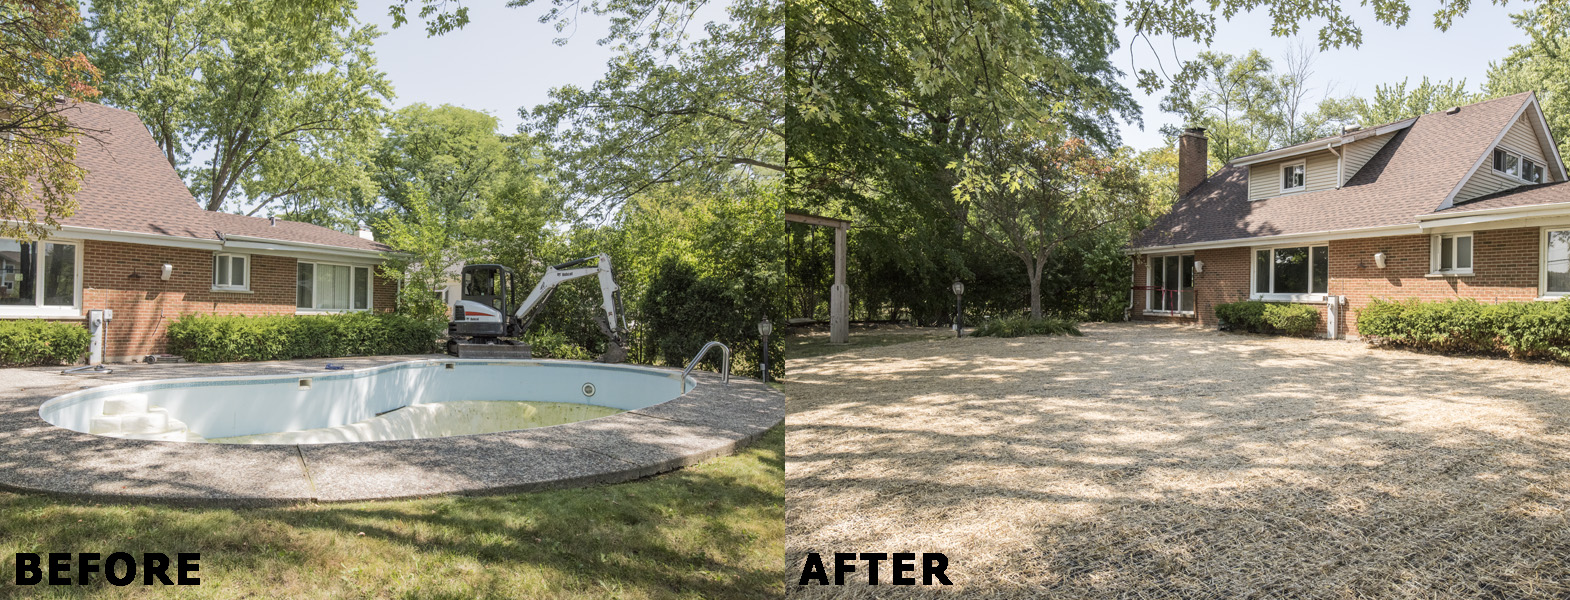 Mack Land LLC - Northbrook, IL Pool Removals